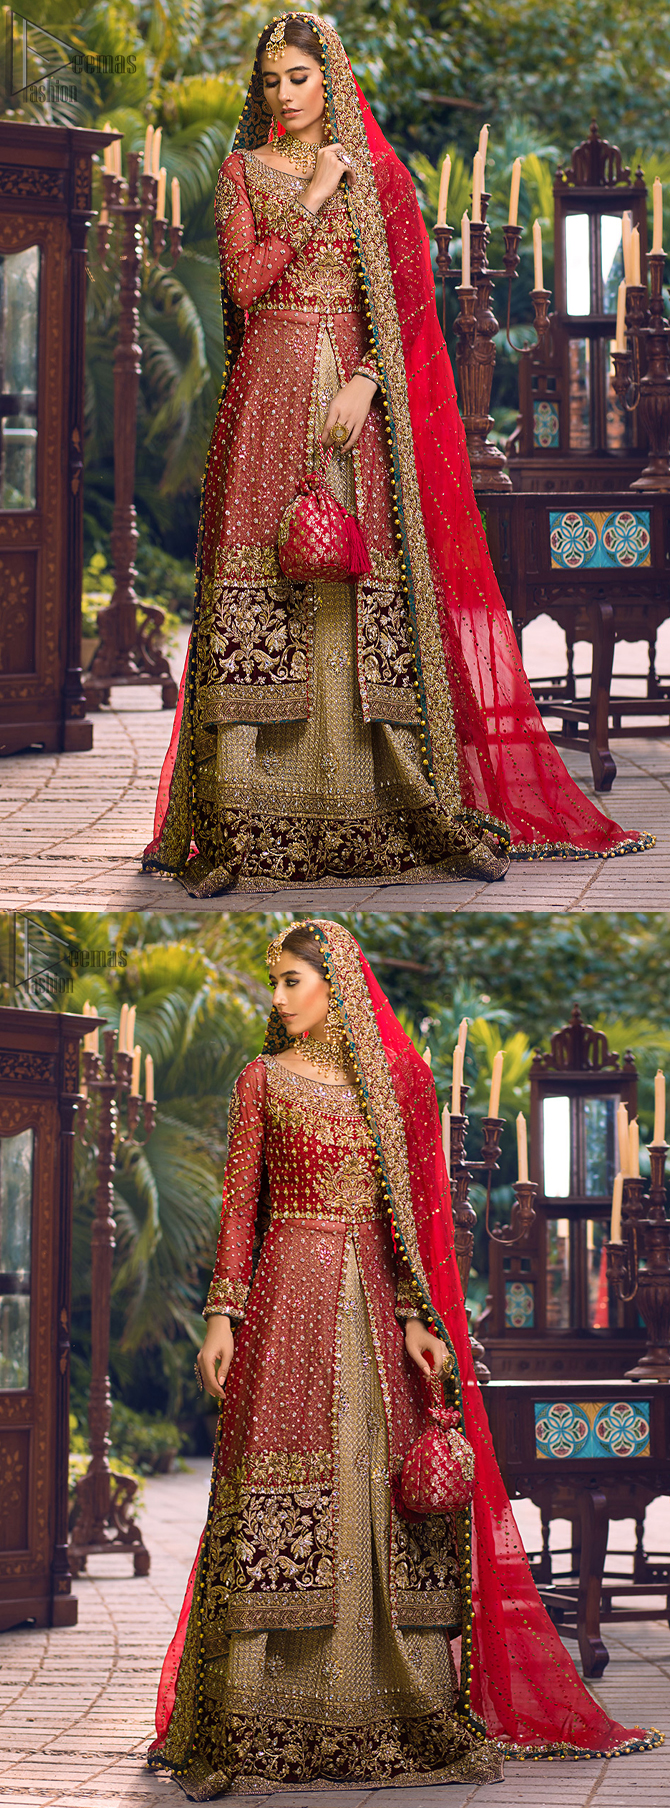 Tradition meets modernity in this dress. The lehenga with hand embroidery all over and finished with Velvet appliqued borders completes the look.